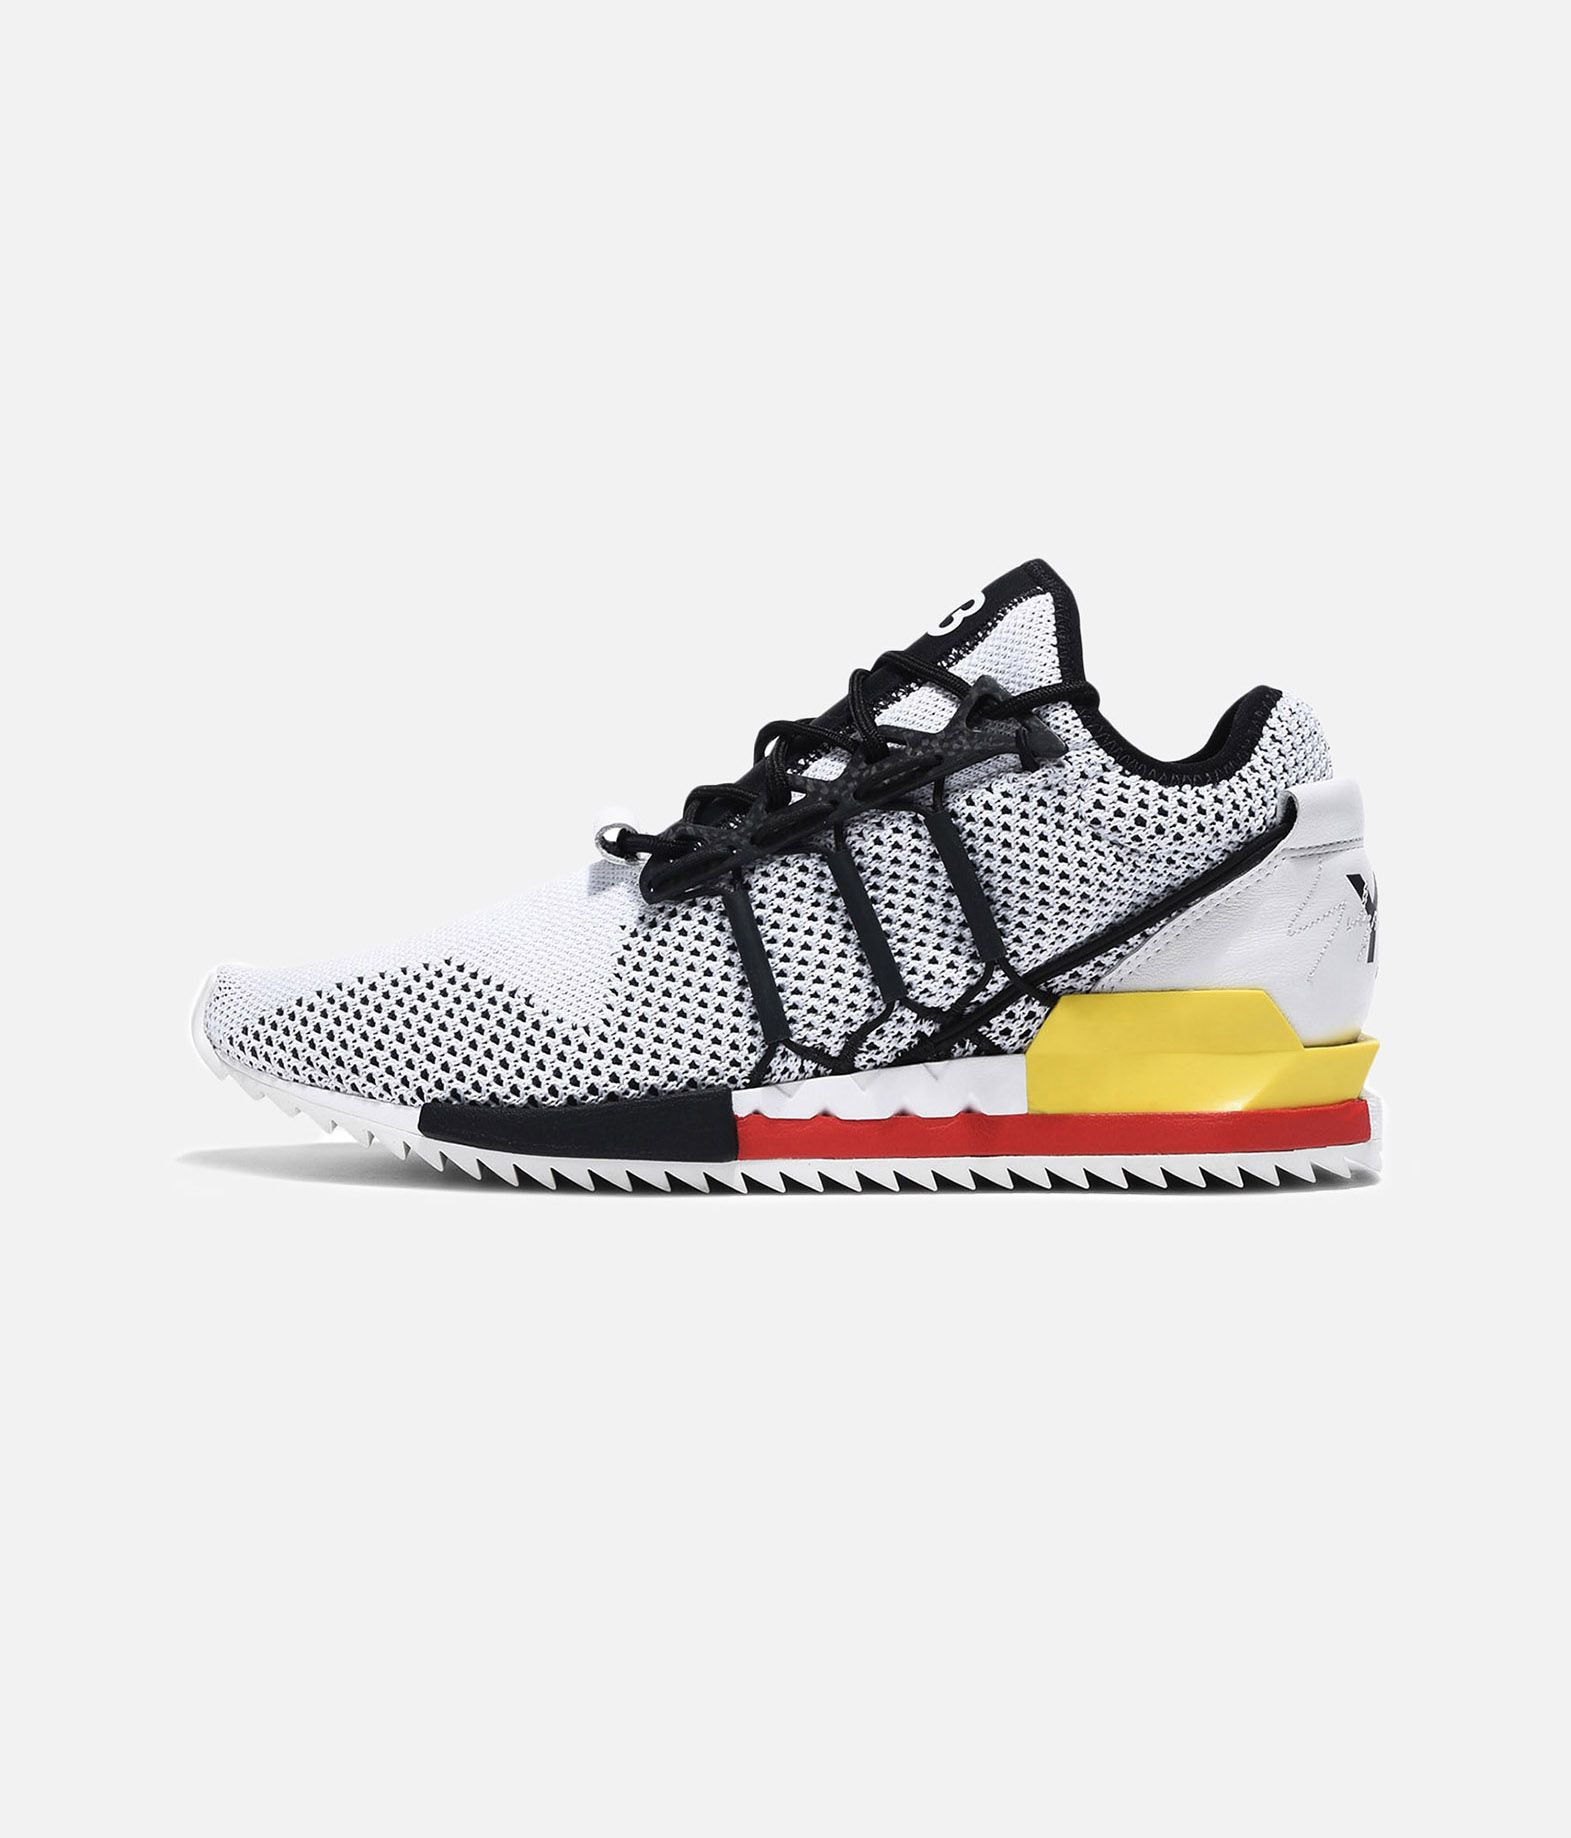 new arrival b4581 6271d ... Y-3 Y-3 Harigane Sneakers E f ...